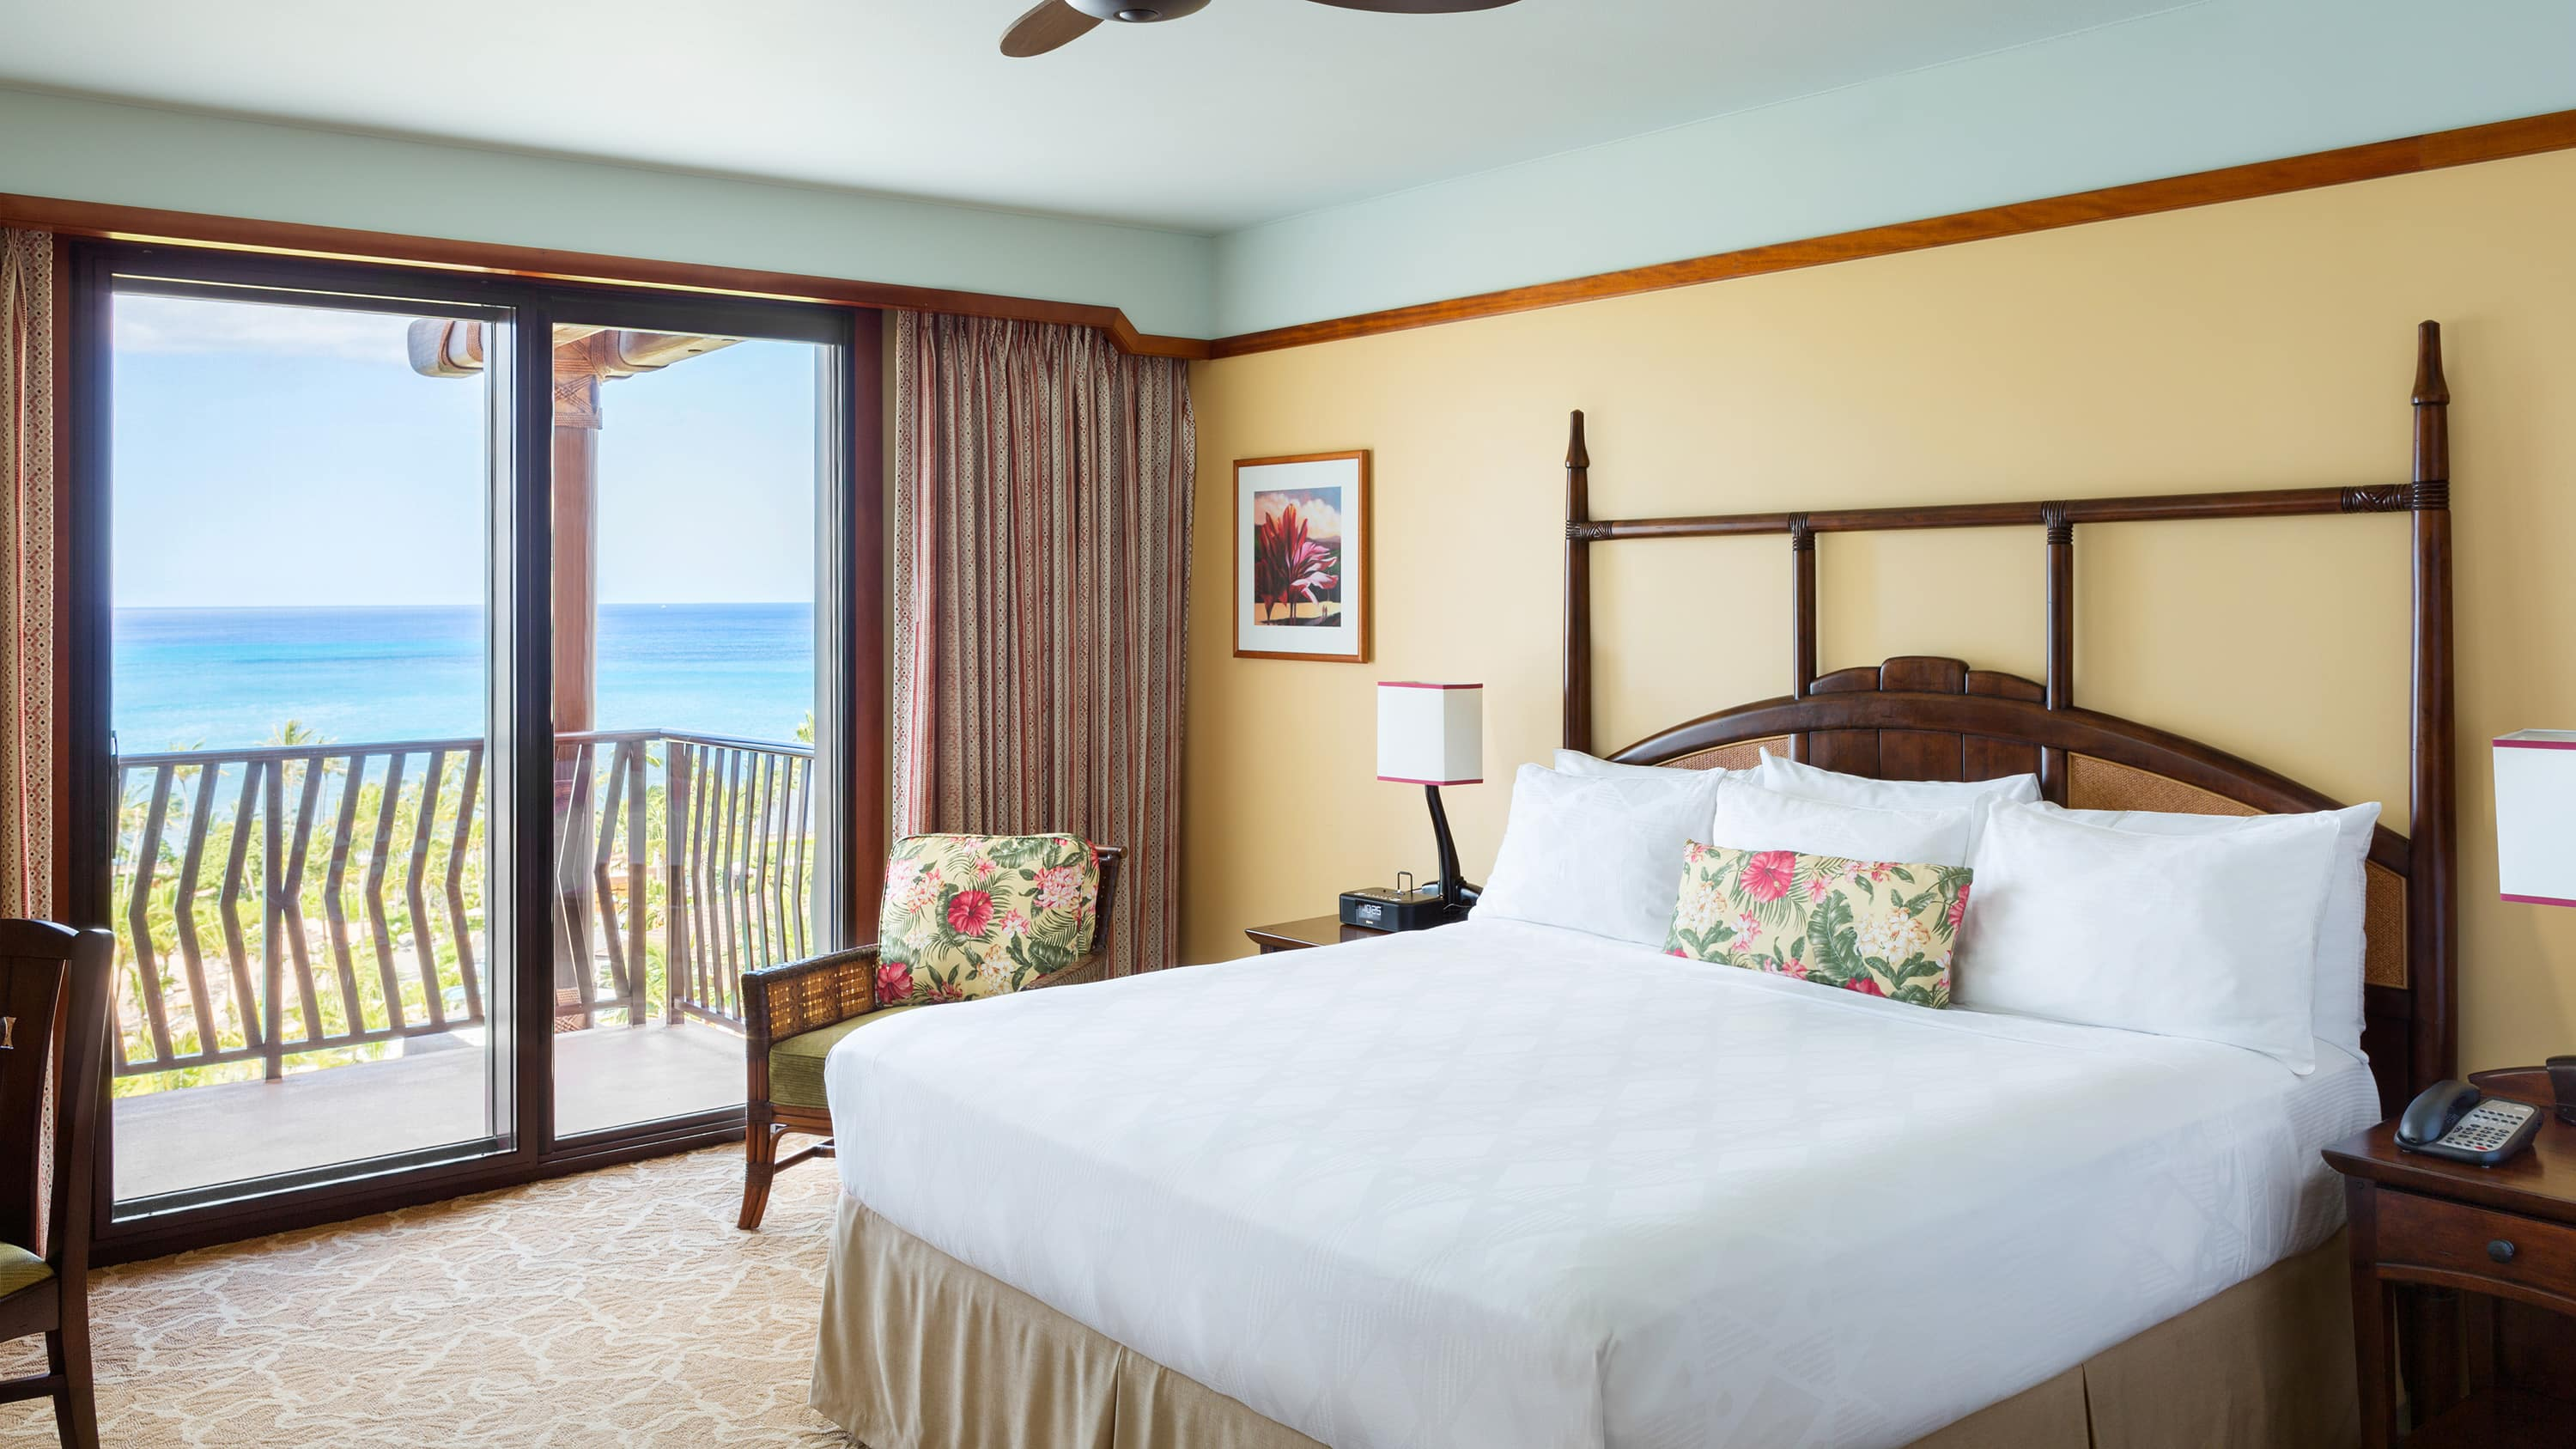 A room with a bed, a runner, 2 chairs, balcony access and towels folded to resemble a Mickey Mouse head